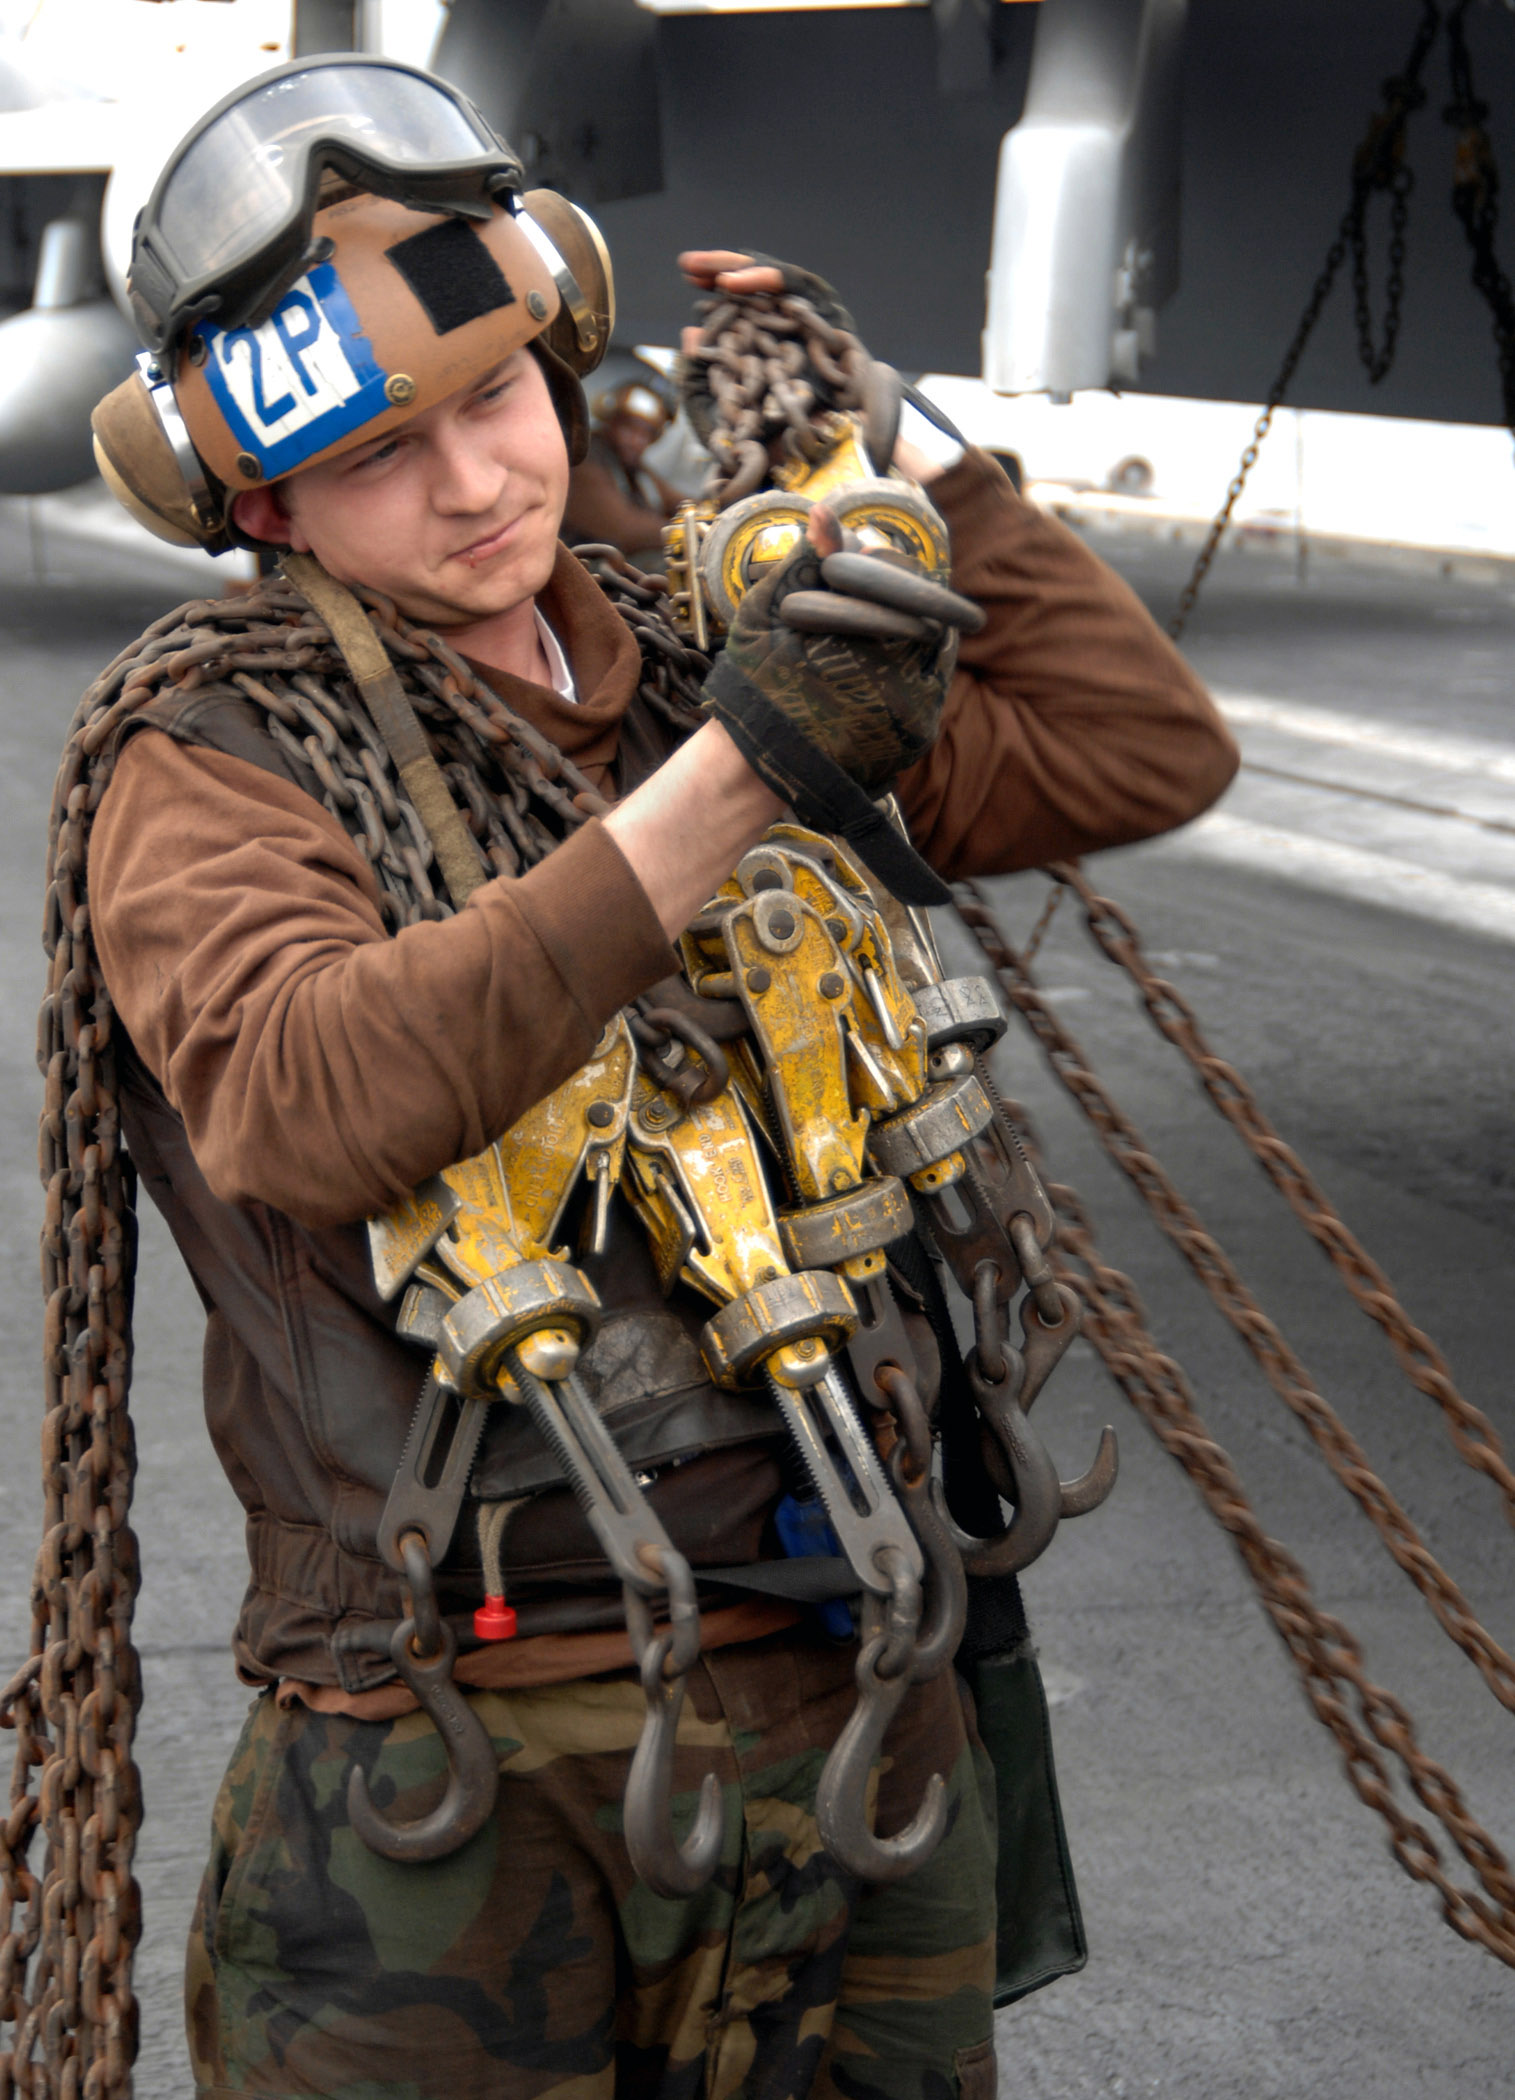 File:US Navy 080103-N-0455L-006 Aviation Machinist's Mate Airman ...